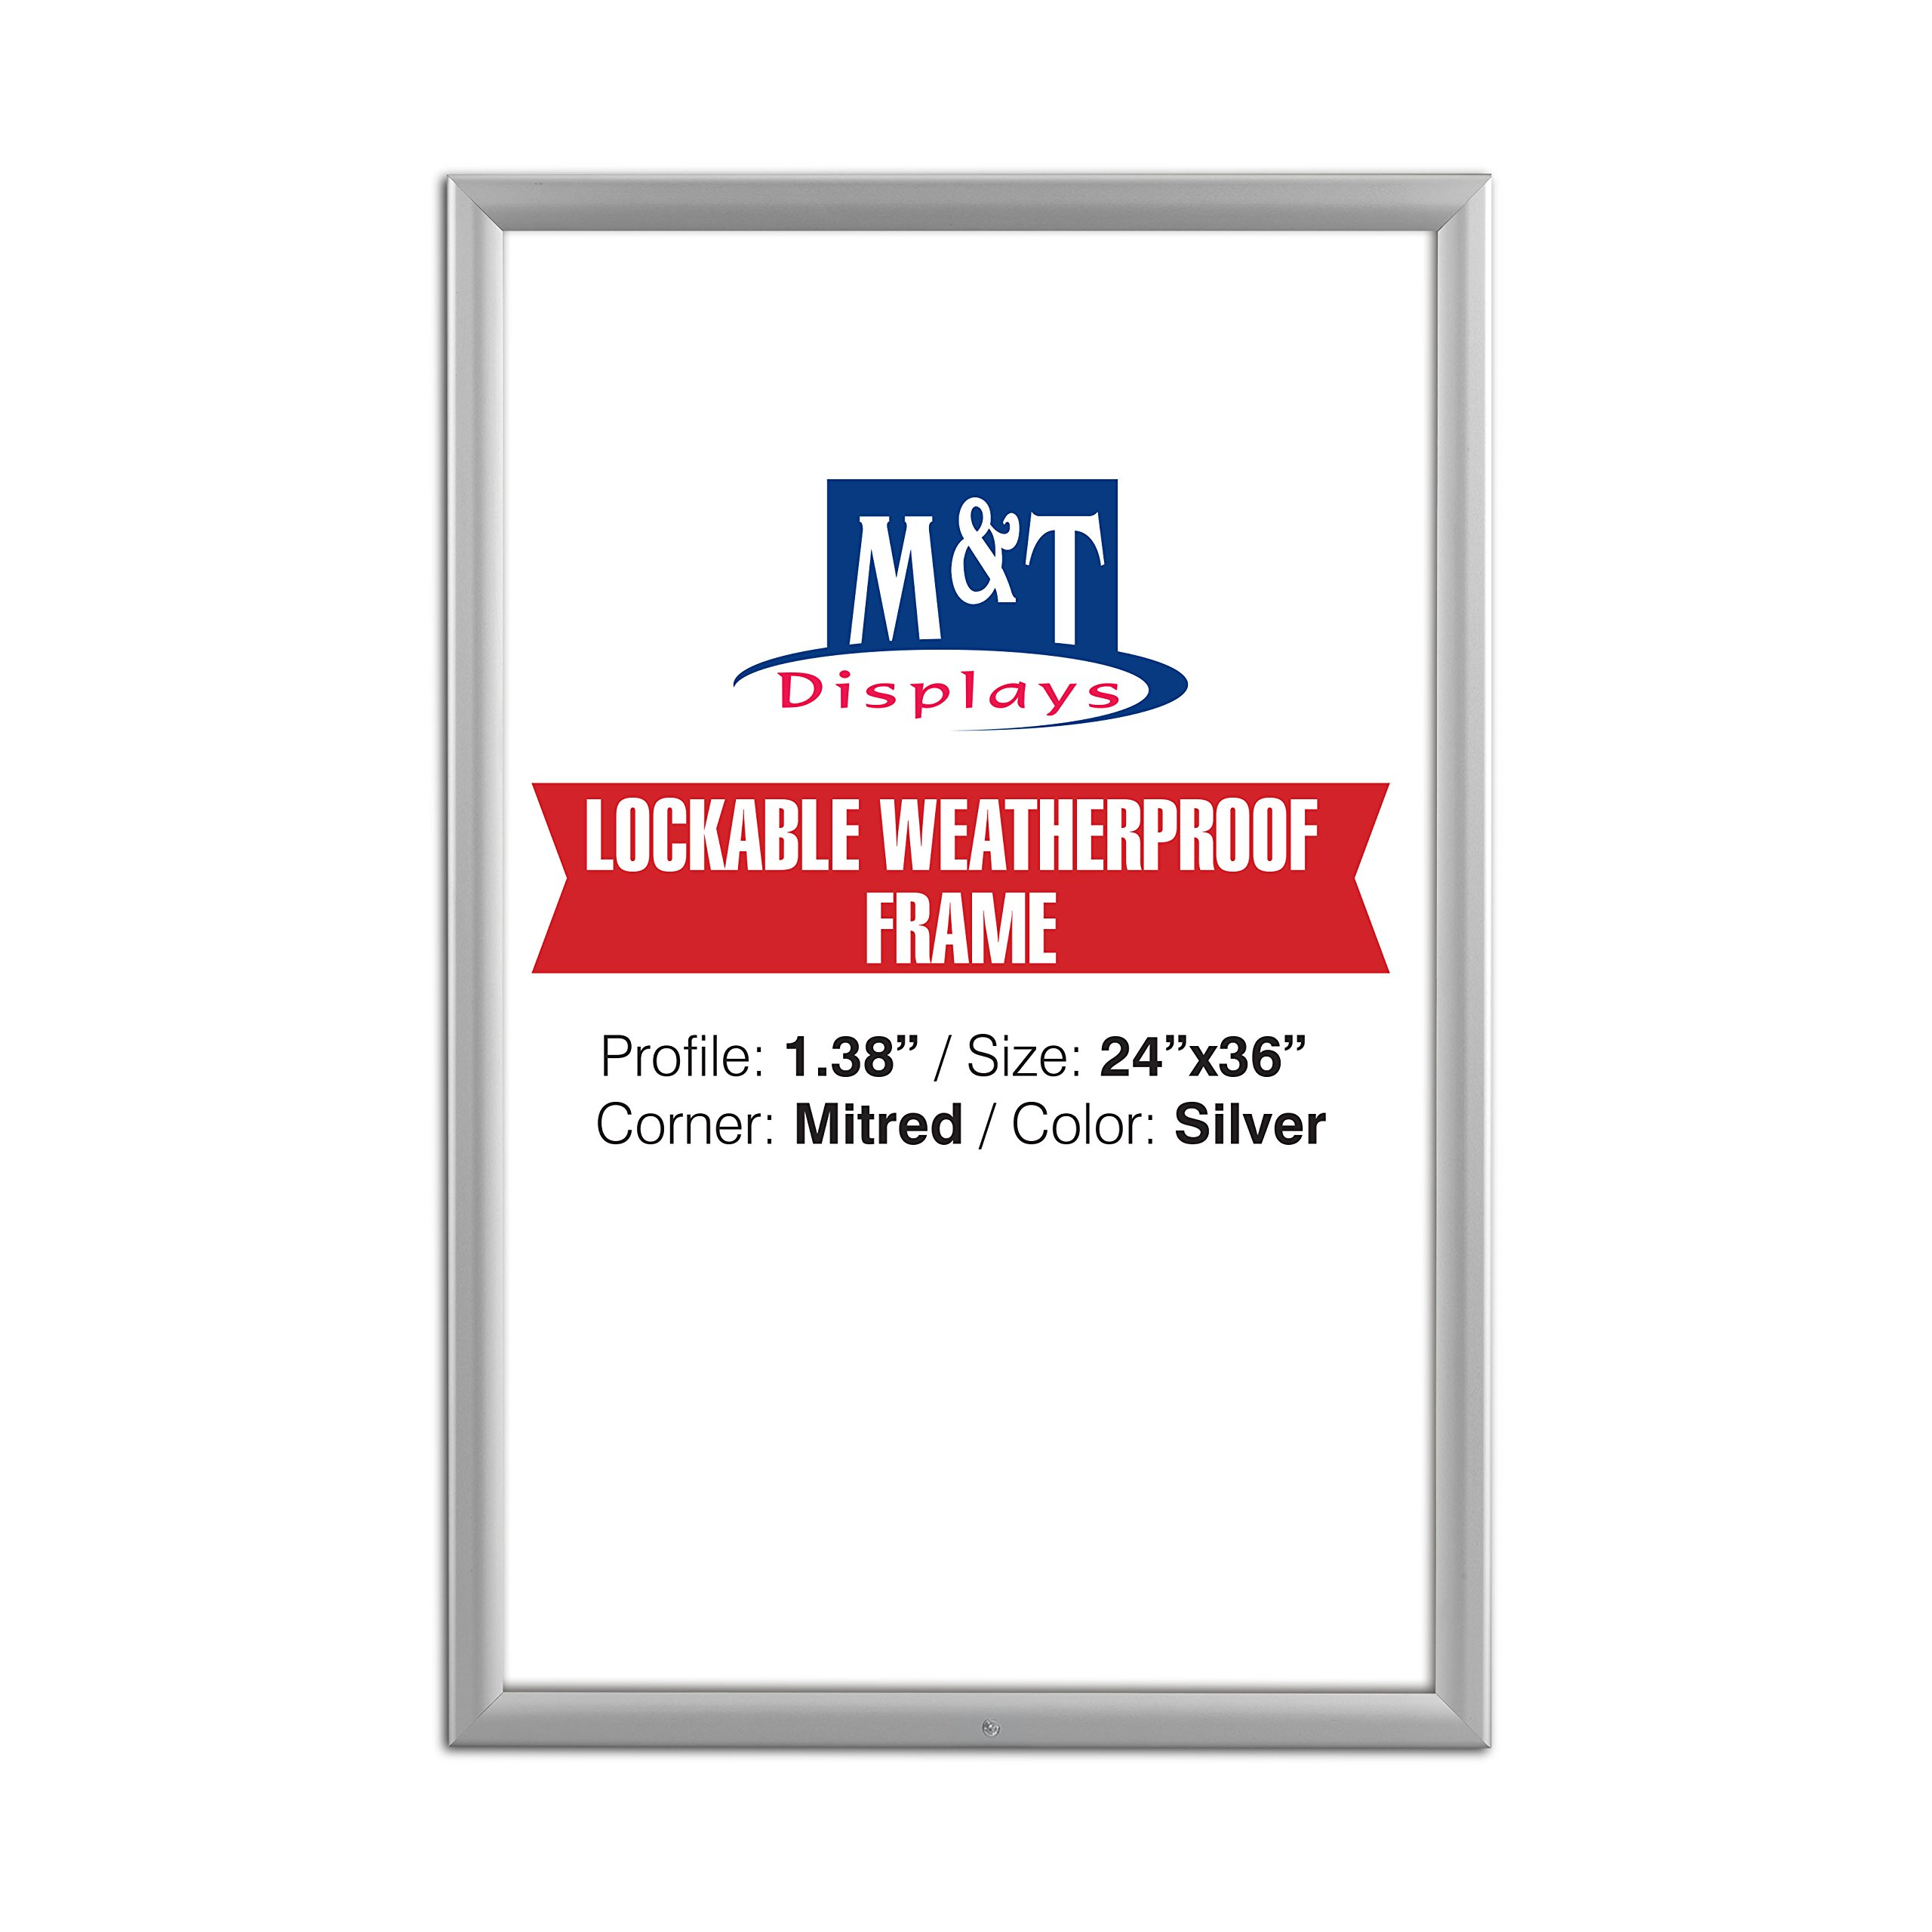 Lockable Weatherproof Frame 24'' X 36''inches Poster Size ,1.38'' Aluminium Profile, Black and Silver Color, Mitred Corner (Silver)